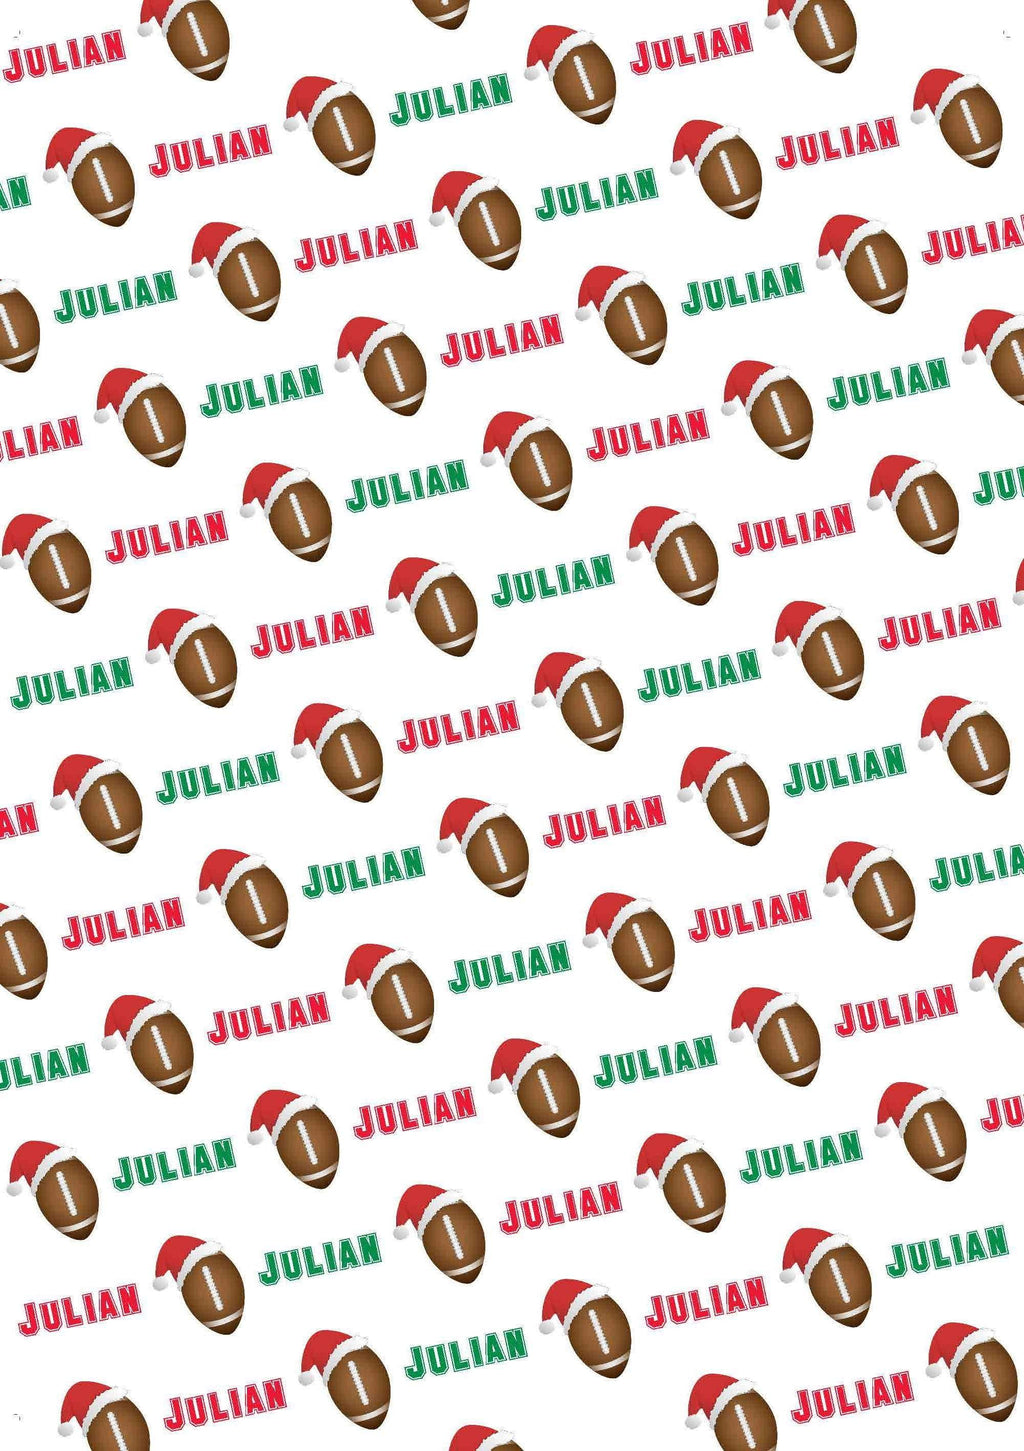 Football Personalized Christmas Tissue Paper - Potter's Printing